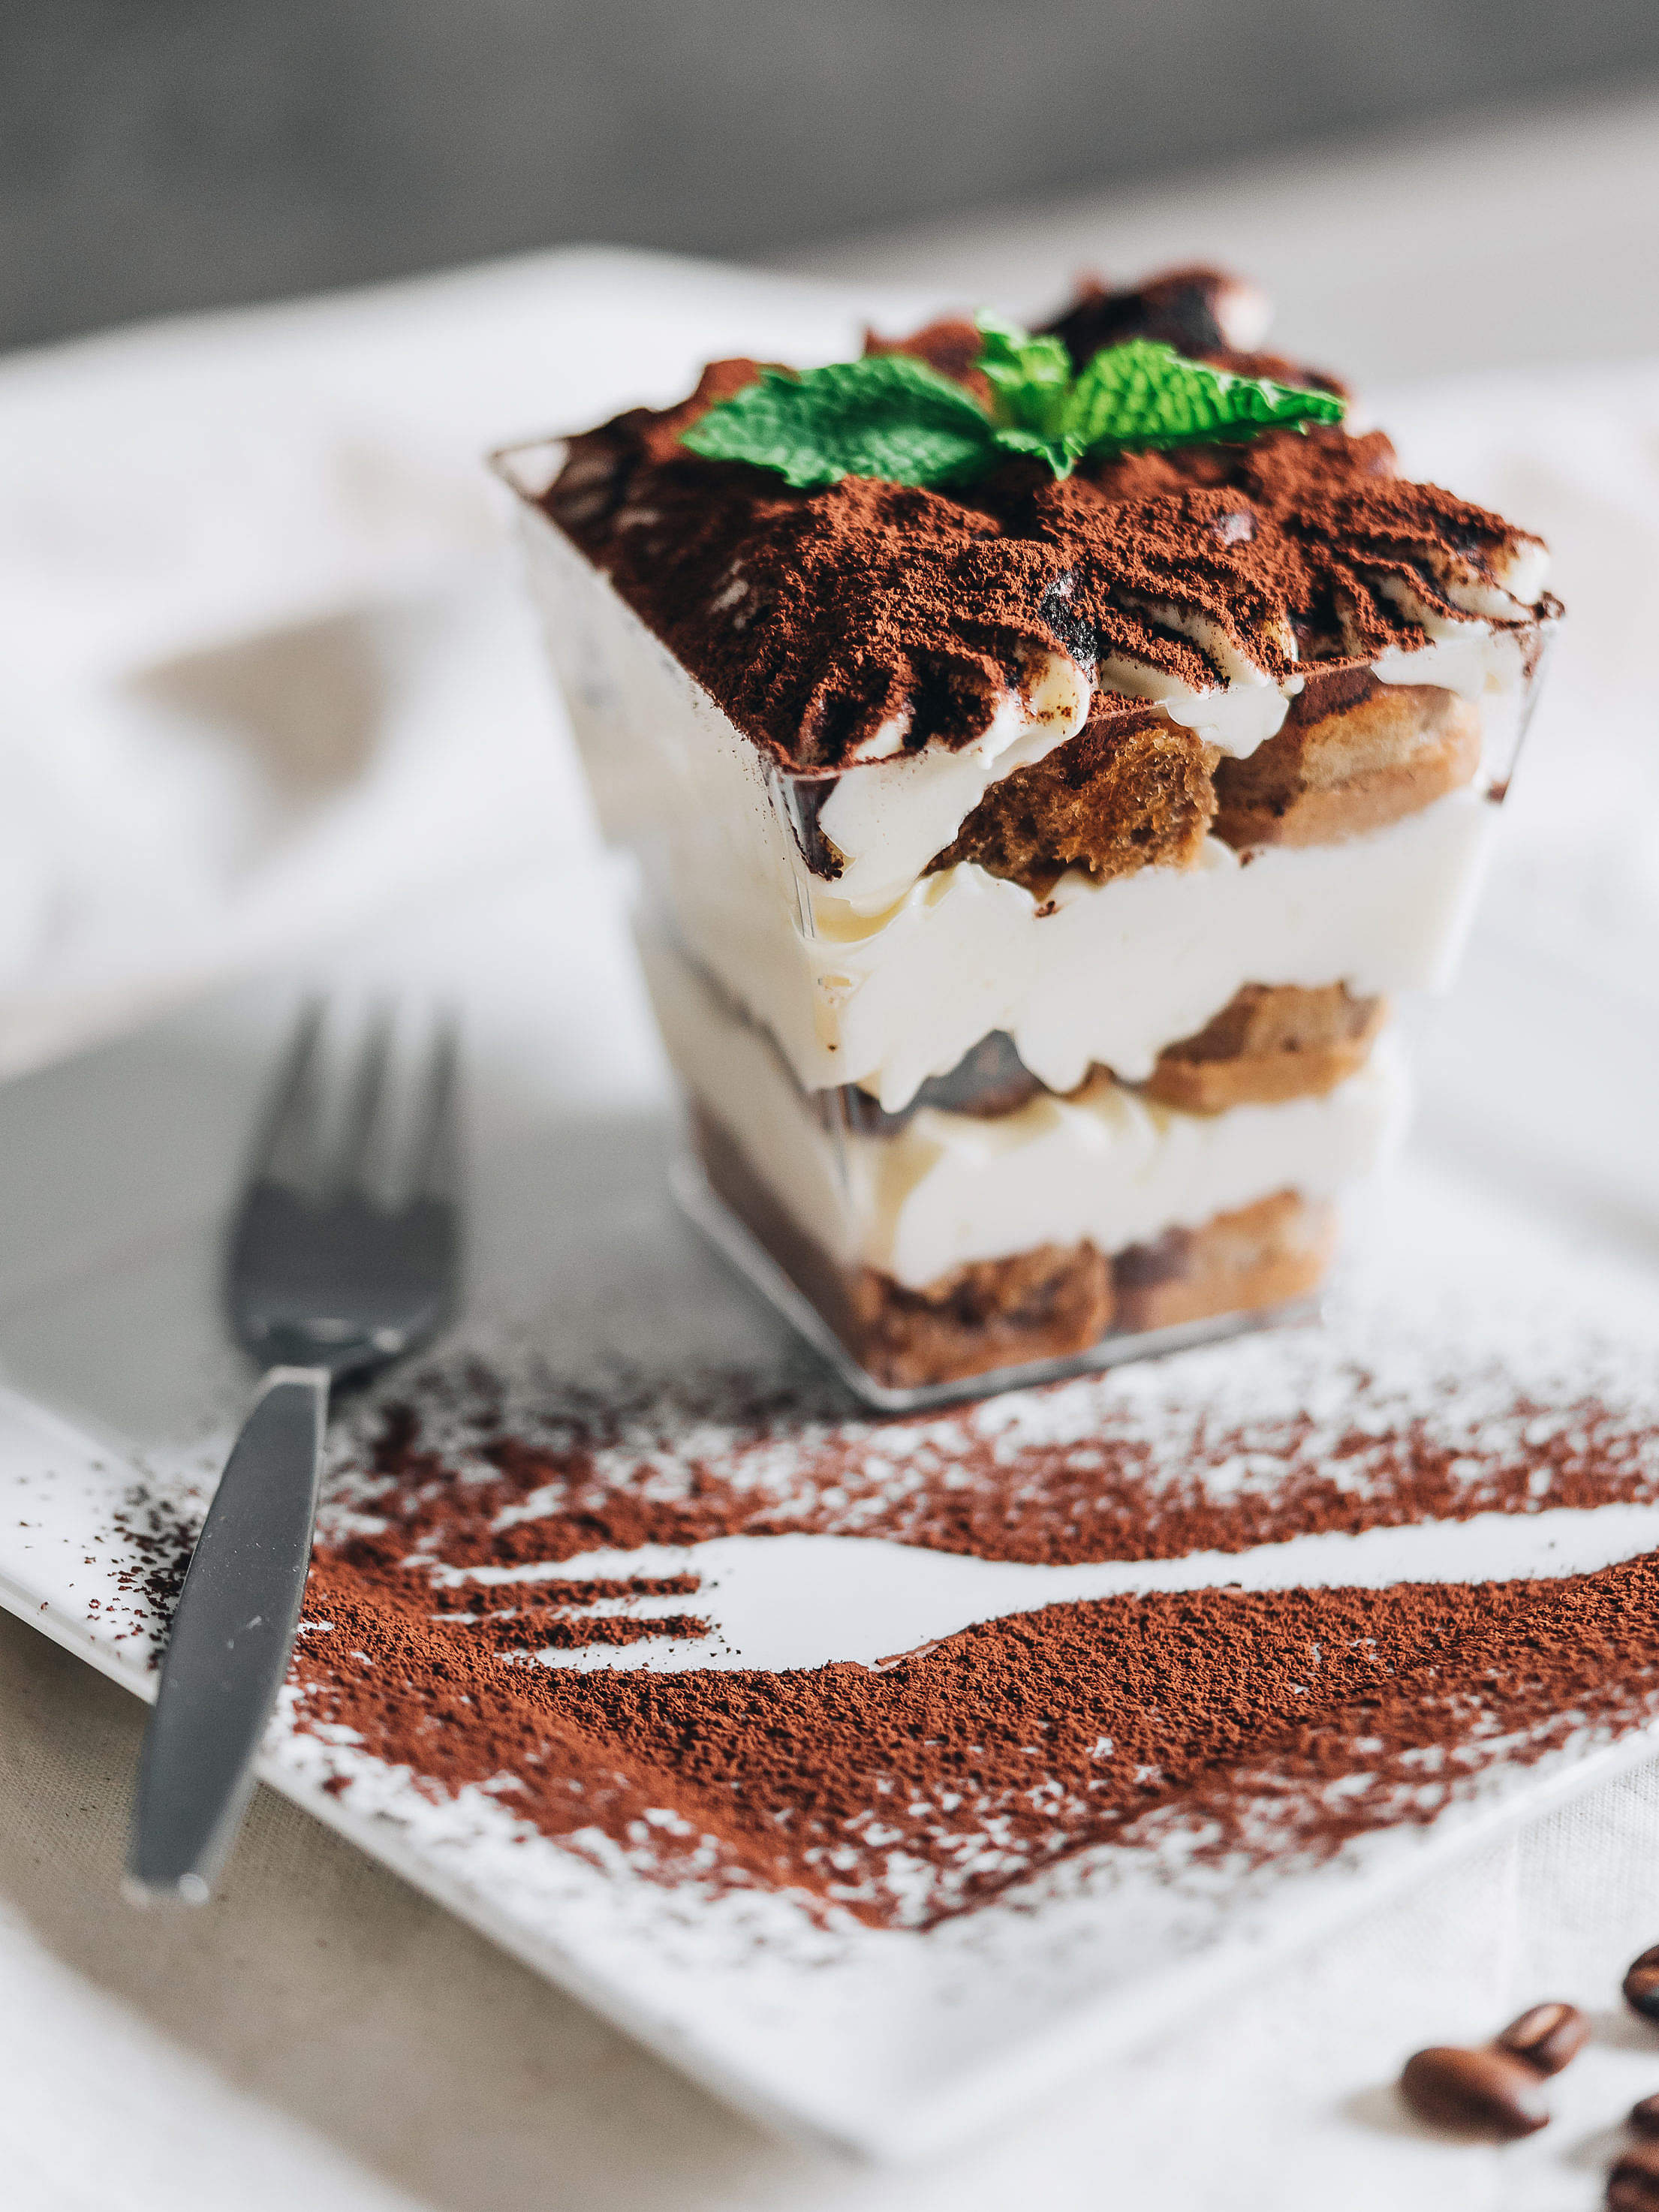 Tiramisu Served with Fork Outline Dusted with Cocoa Powder Free Stock Photo